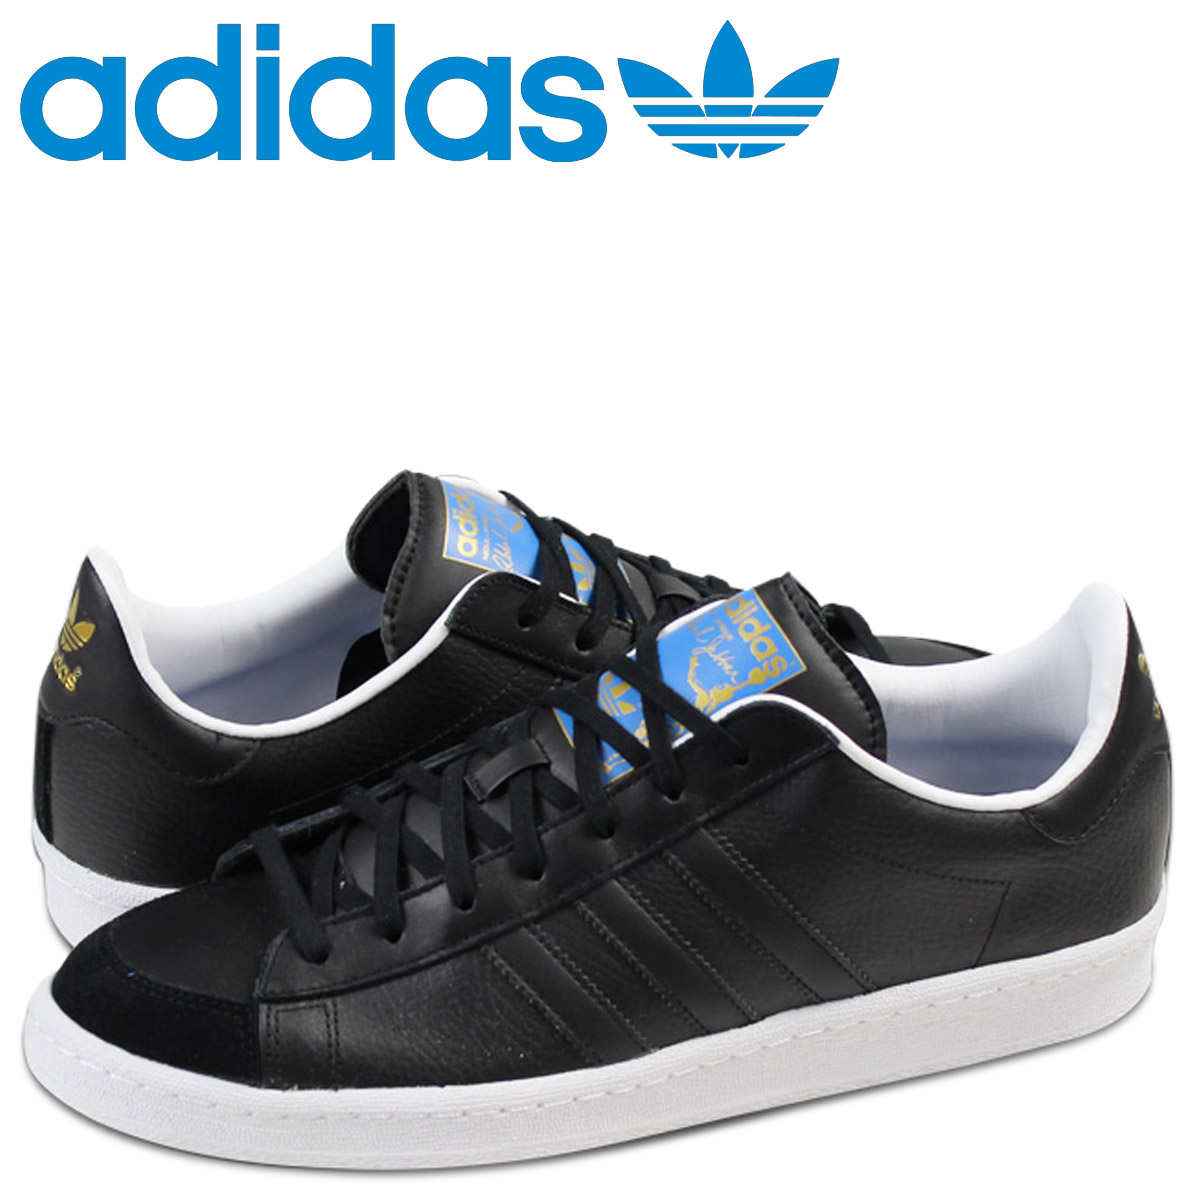 8d49be99d2b3 ALLSPORTS  Adidas originals adidas Originals JABBAR LO sneakers Jabbar low  leather men s Kareem Abdul Jabbar G99849 black  regular